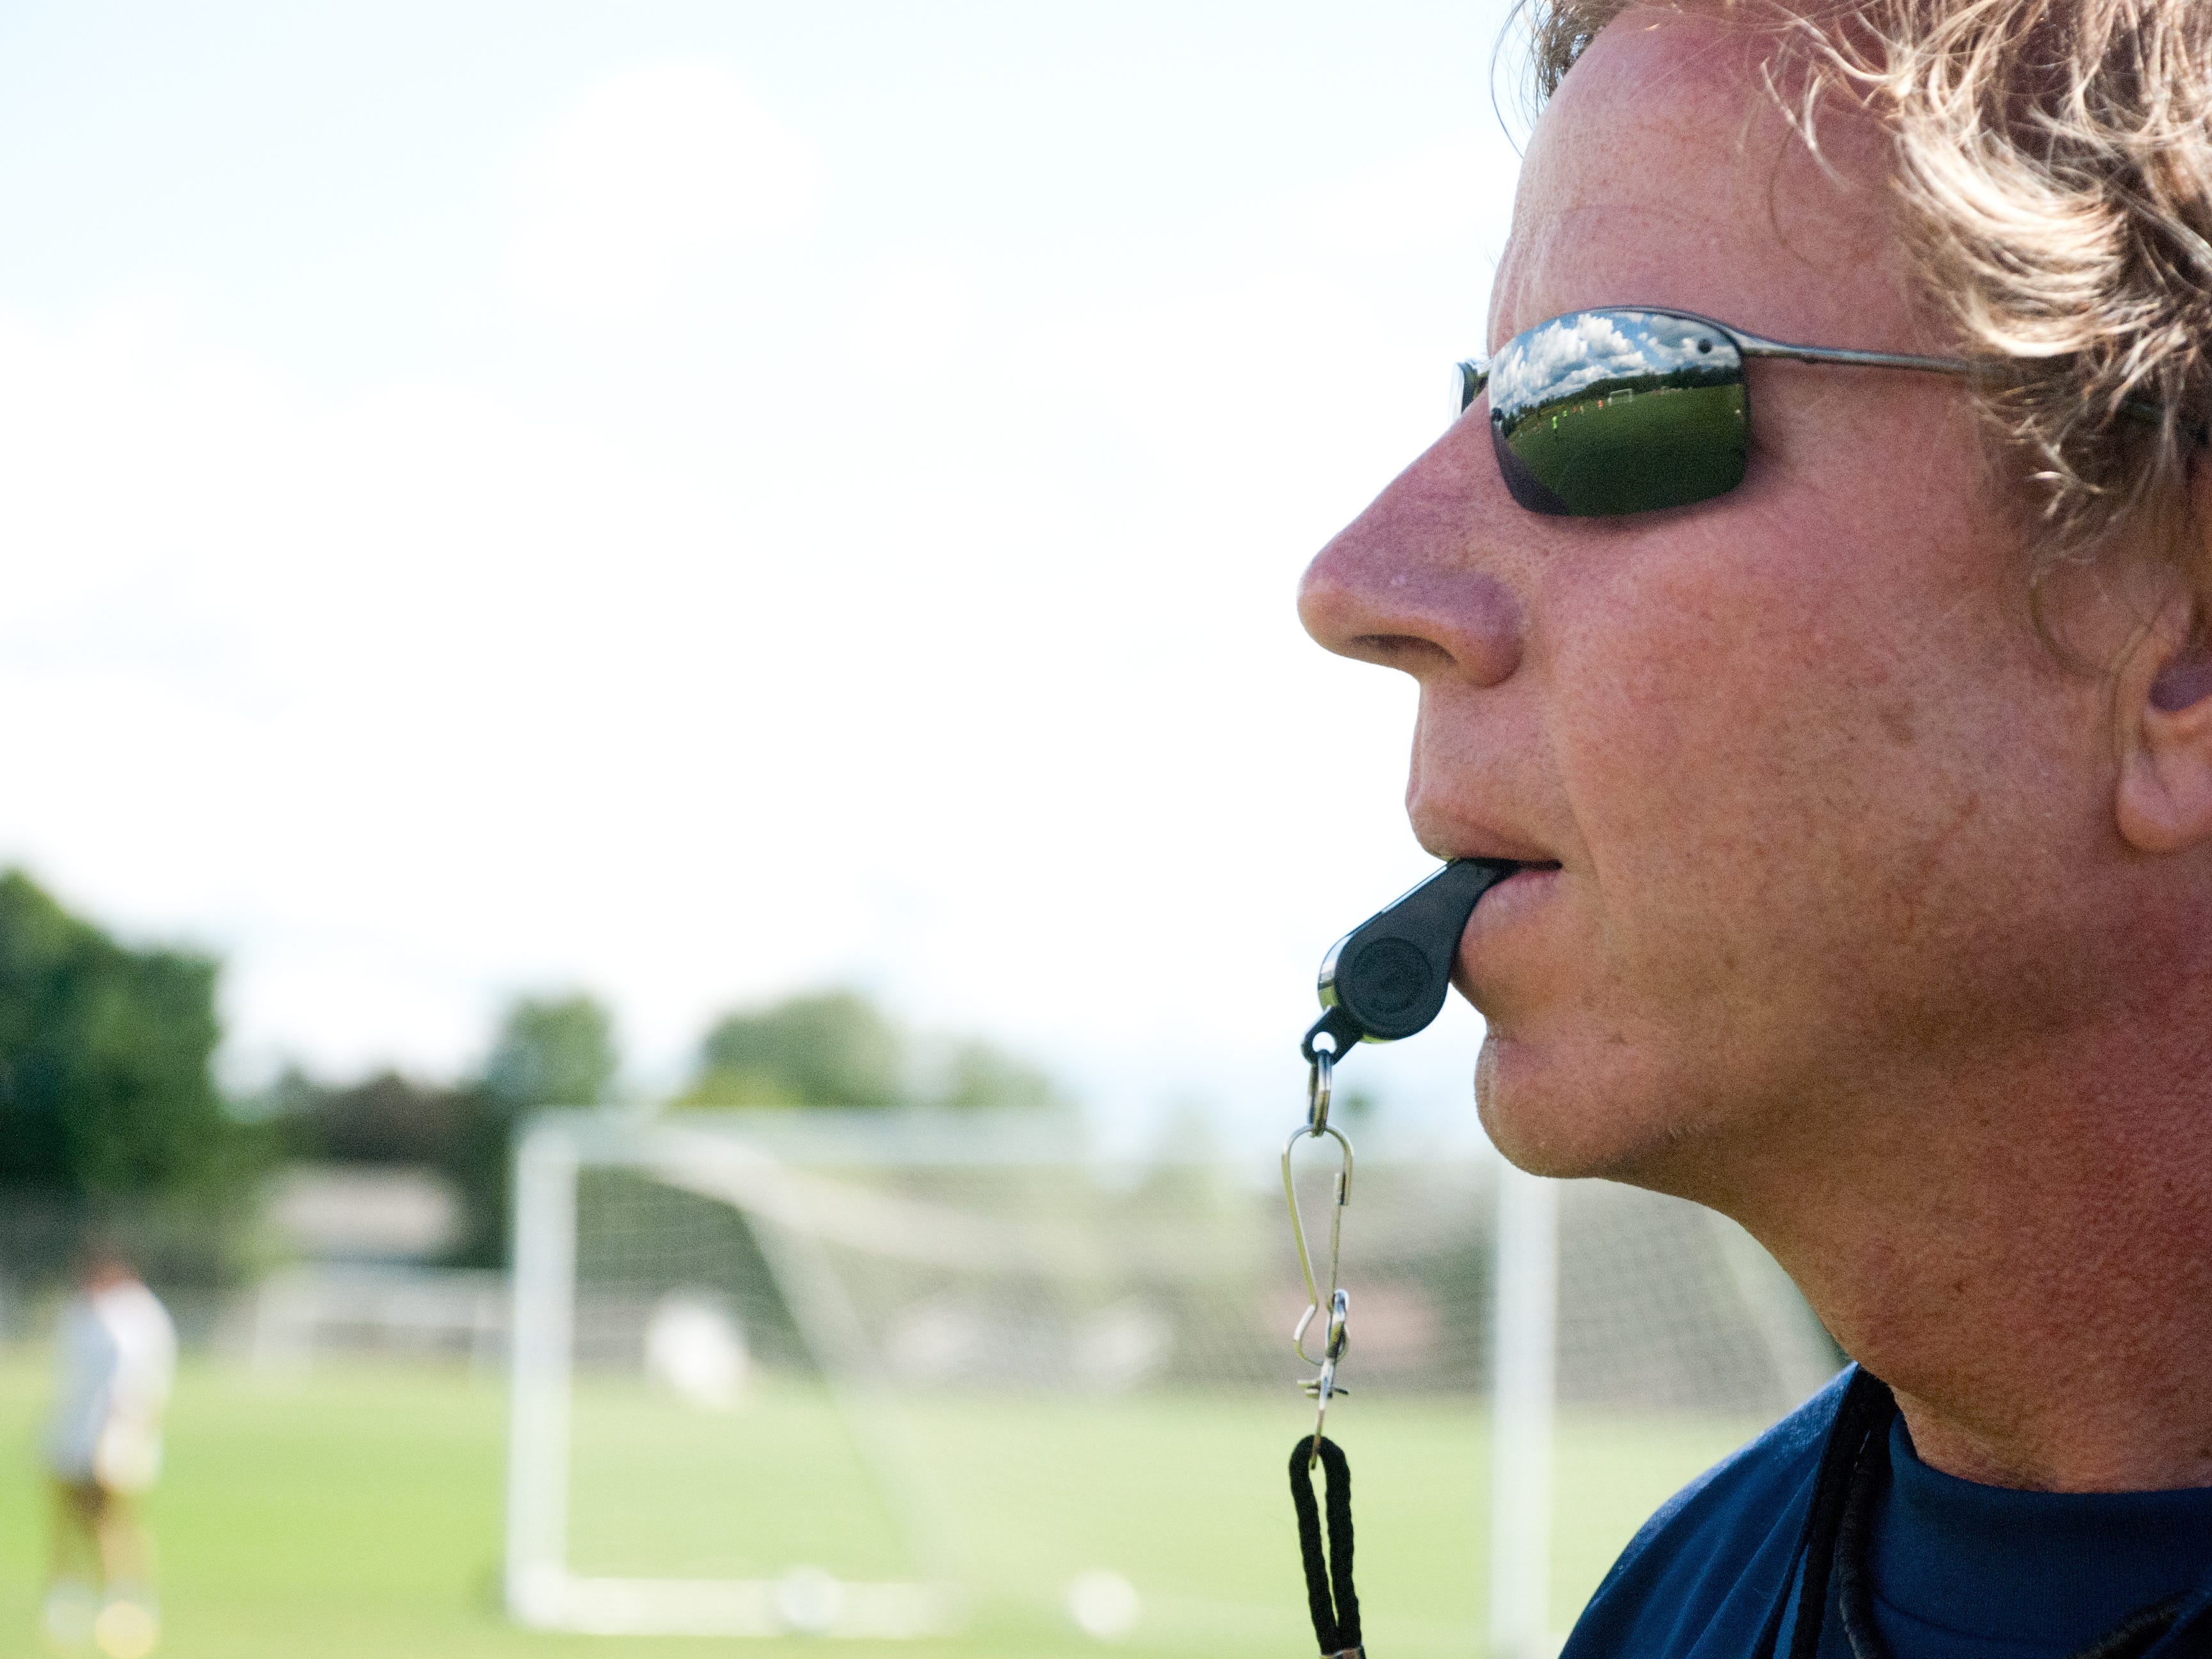 Longtime Essex High School boys soccer coach Scott Mosher has stepped down after 11 seasons. Mosher's work responsibilities with a start-up cyber security company, a position he recently accepted, won't leave time for coaching.